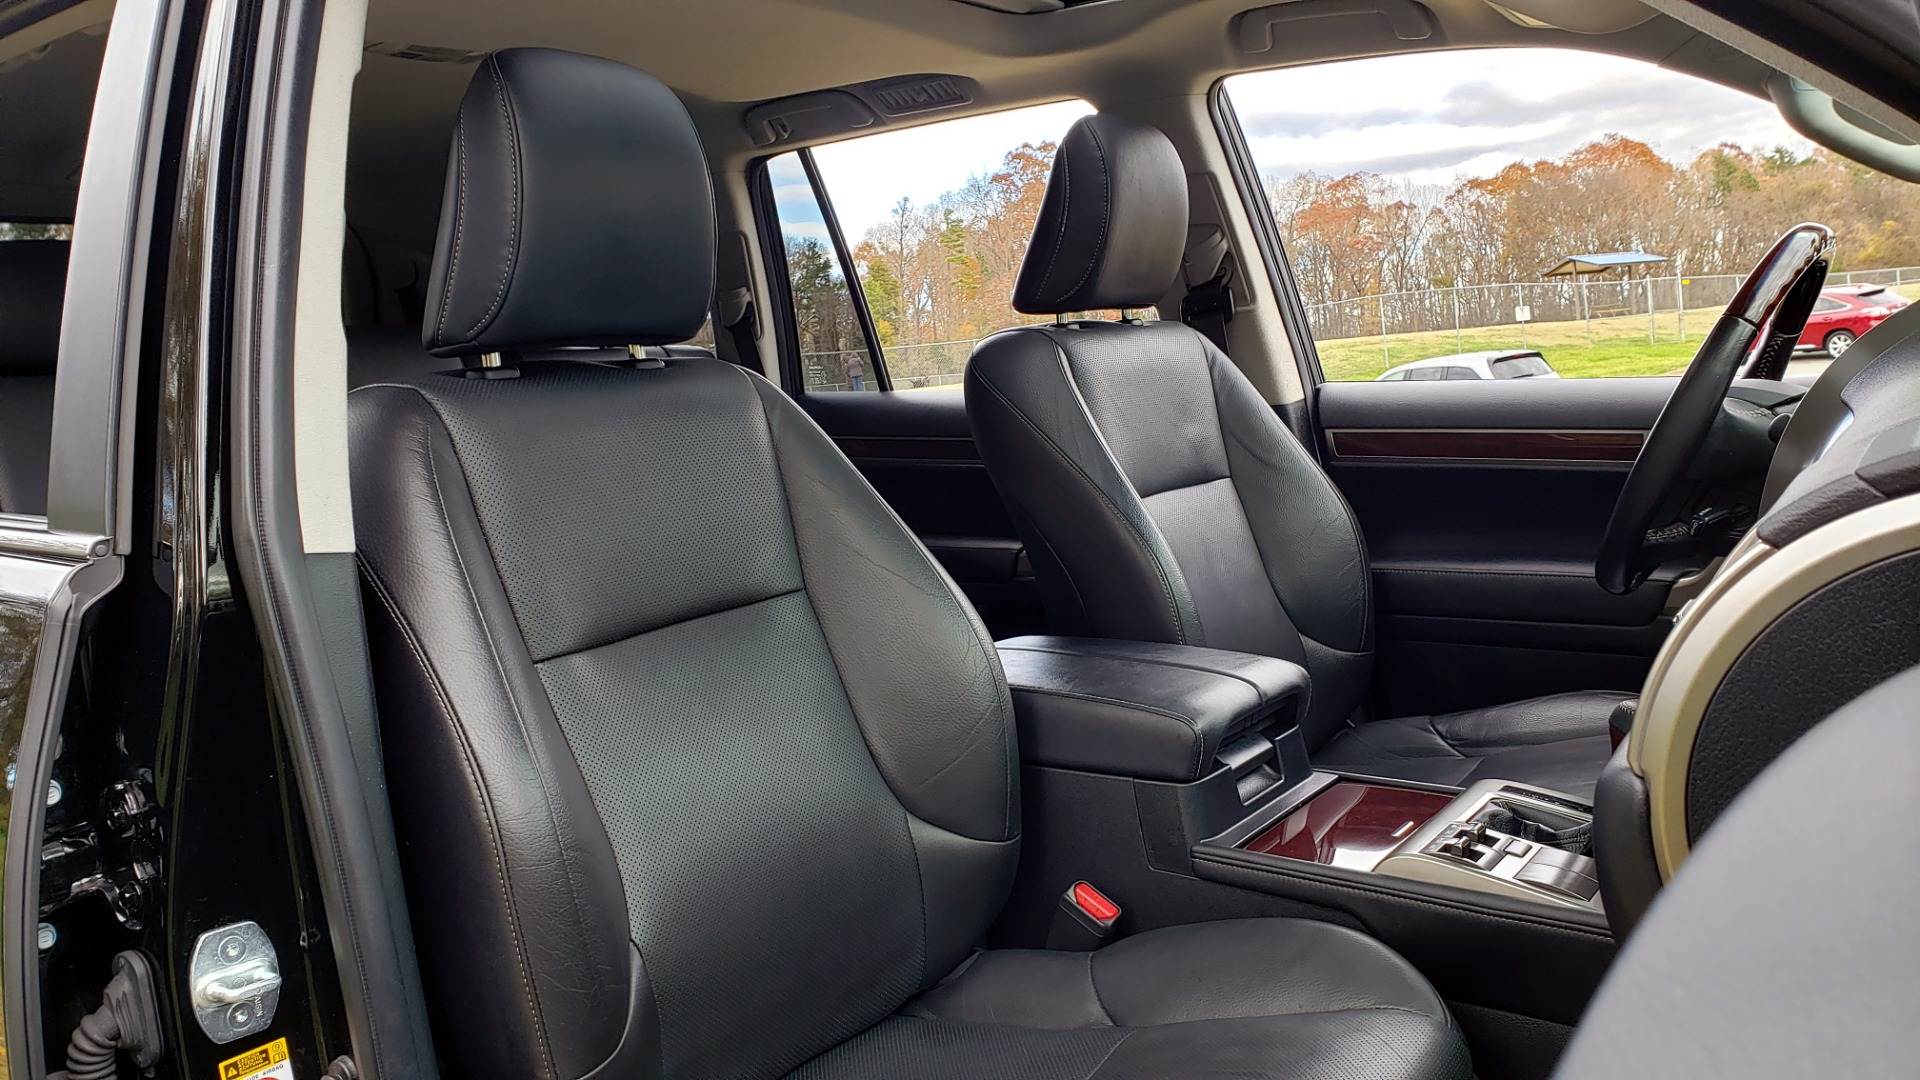 Used 2017 Lexus GX 460 PREMIUM / 4WD / NAV / SUNROOF / 3-ROW / BSM / REARVIEW for sale $34,995 at Formula Imports in Charlotte NC 28227 69